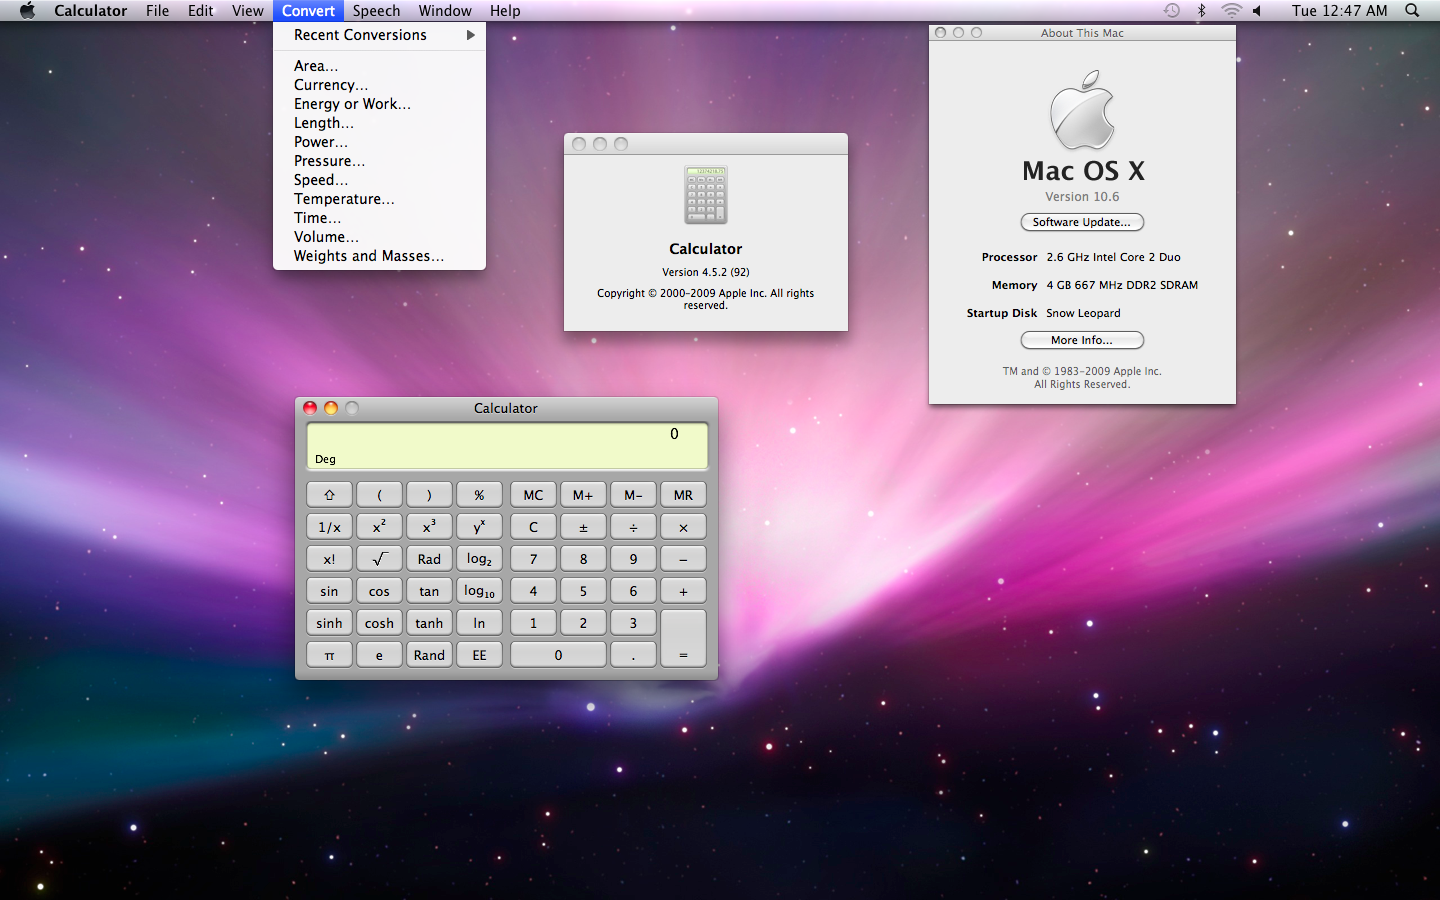 Mac OS X Snow Leopard: 10 6 Build 10A286 Exclusive Preview